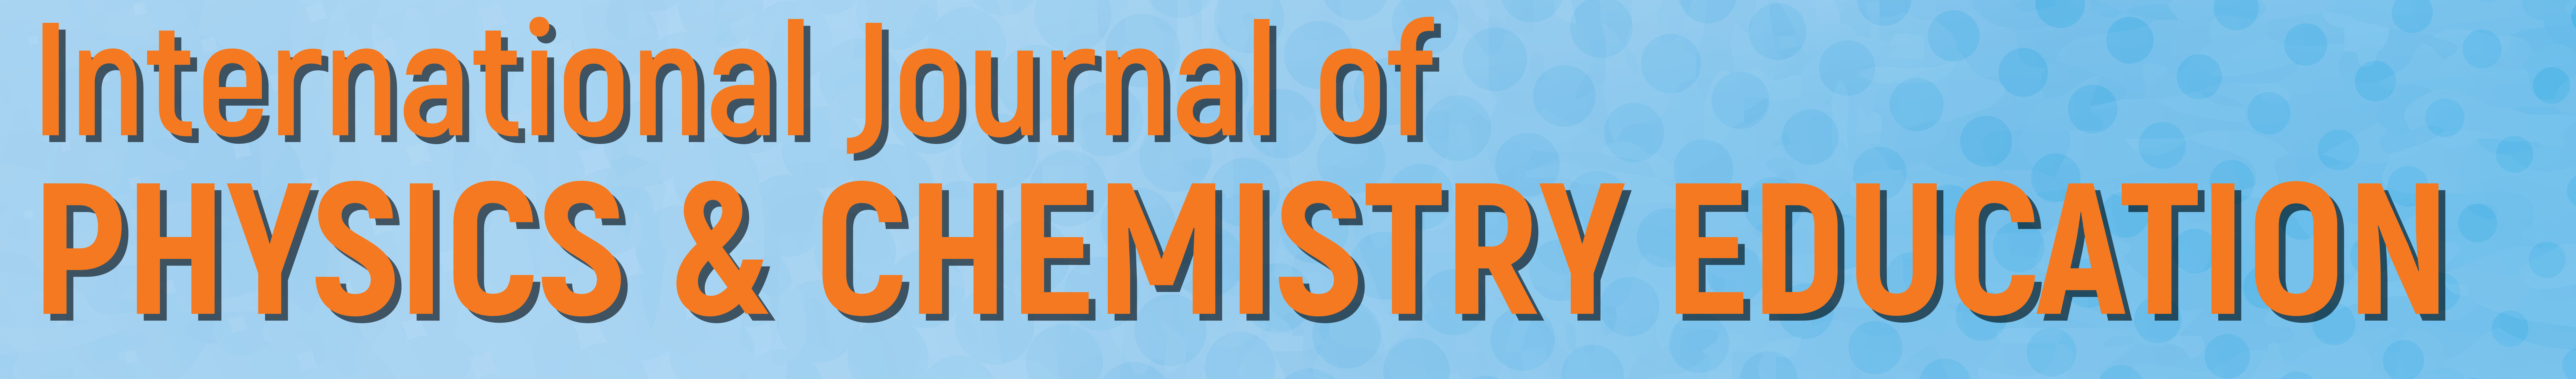 IJPCE - International Journal of Physics and Chemistry Education